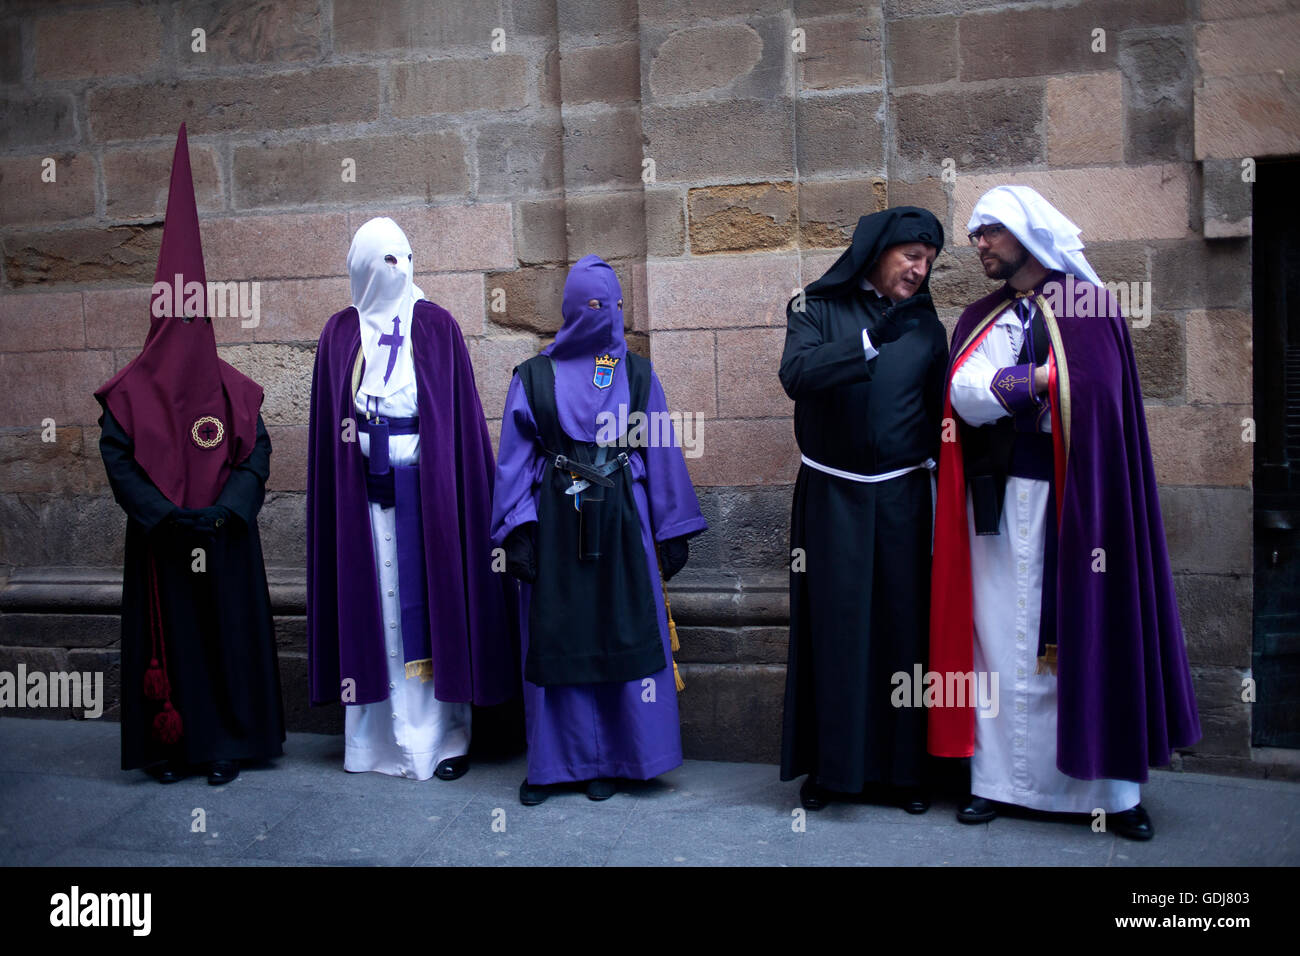 Penitents from different brotherhoods during an Easter Holy Week procession in Astorga, Castilla y Leon, Spain. - Stock Image